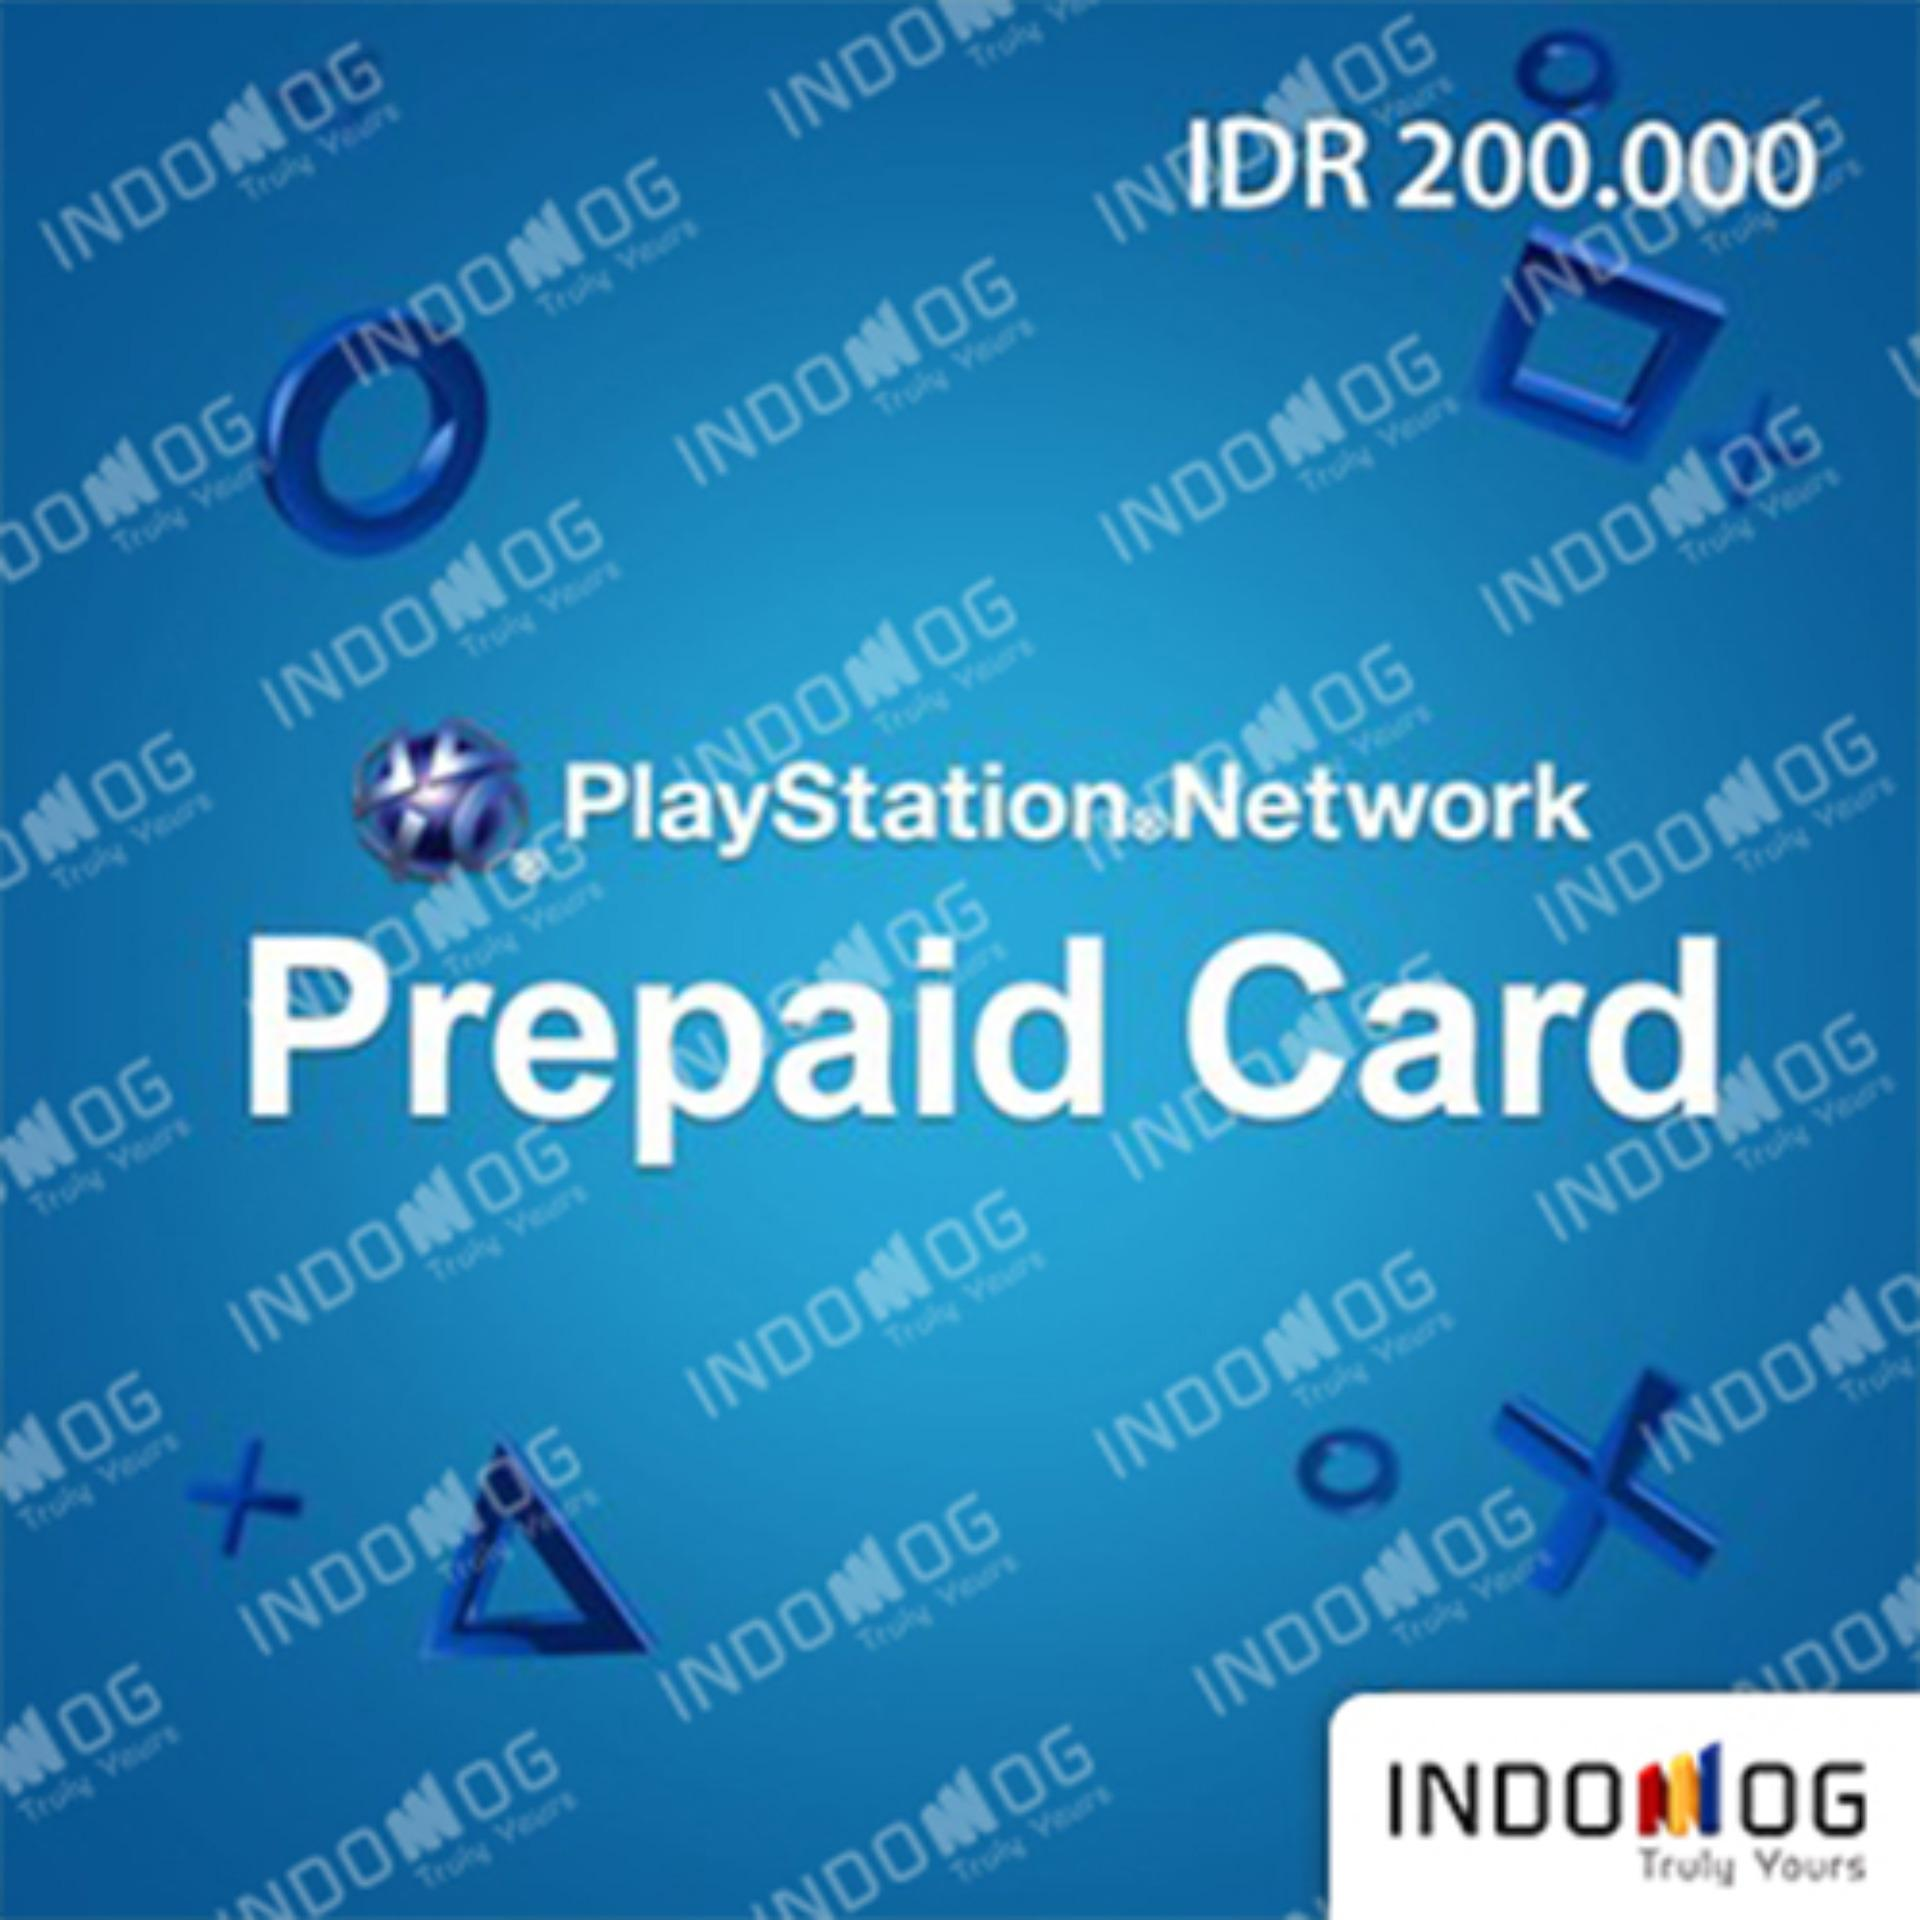 Indomog Playstation Store Prepaid Card 200.000